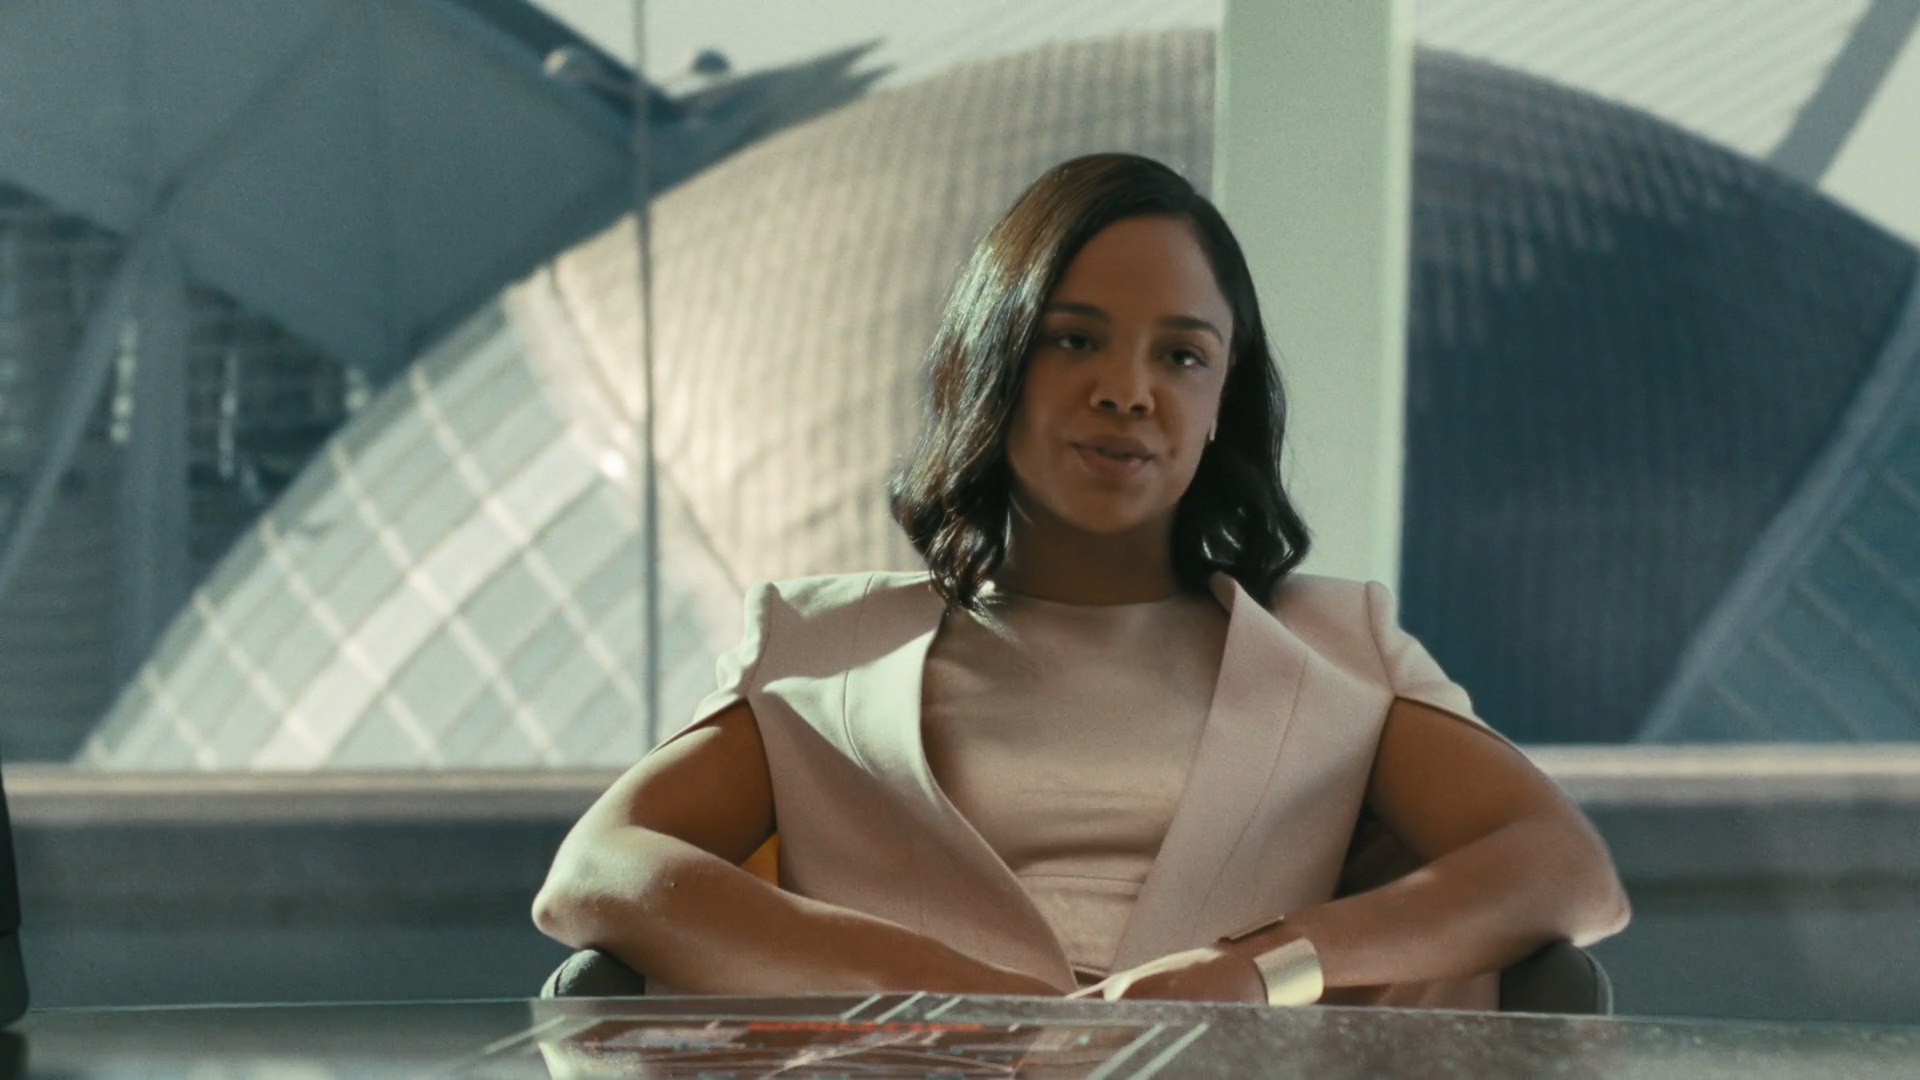 Westworld Season 3 Episode 1 Review Tessa Thompson as Charlotte Hale